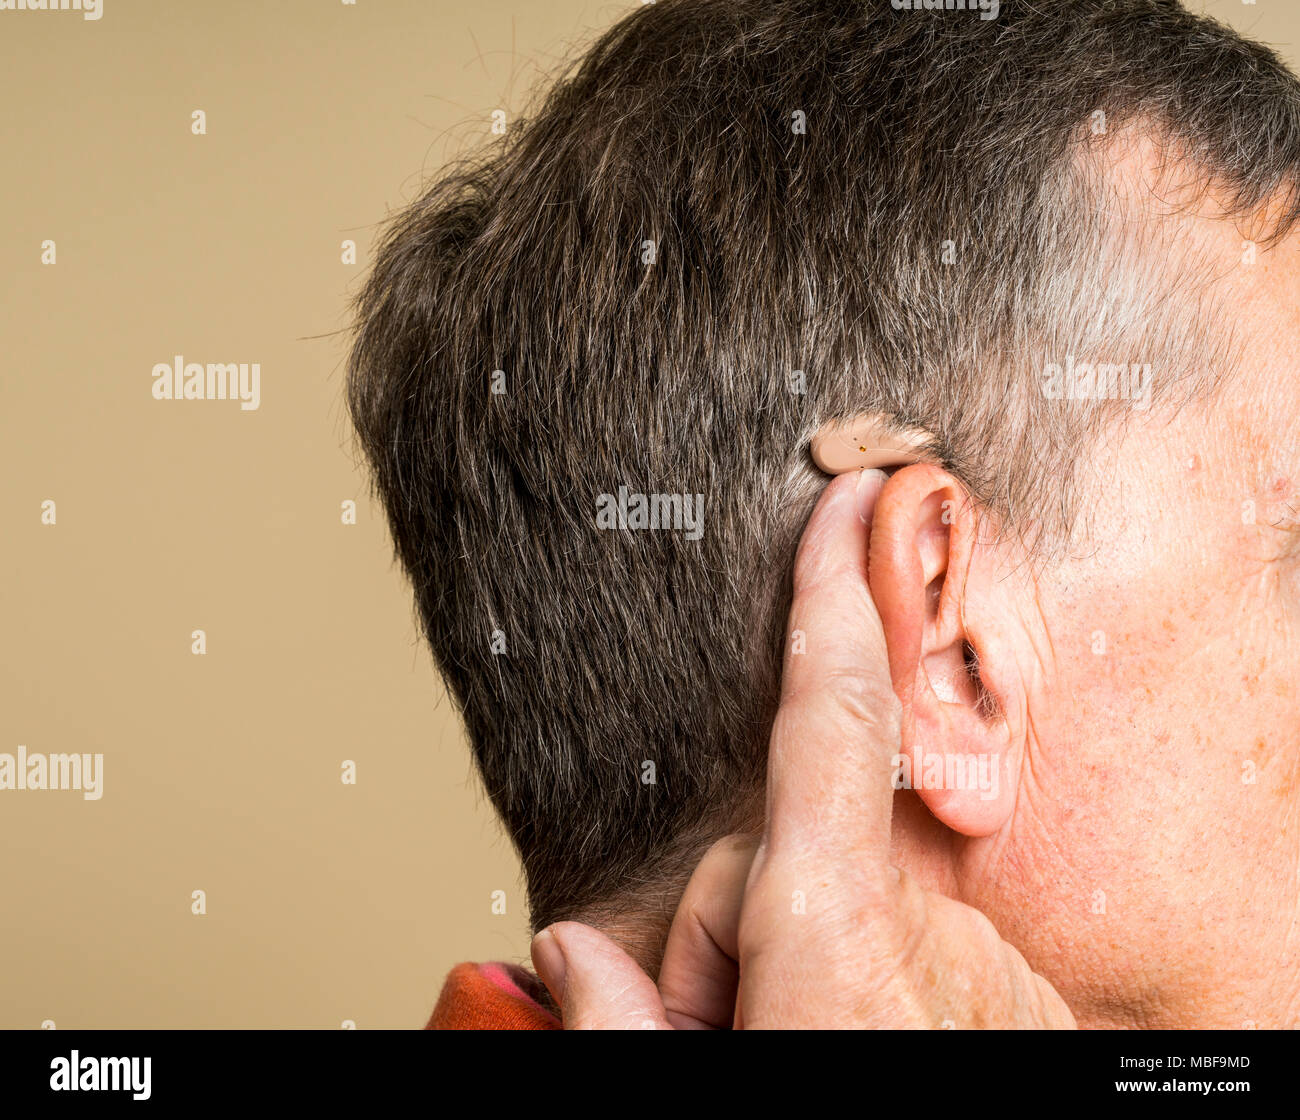 Senior man wearing a small modern hearing aid hidden behind the ear - Stock Image